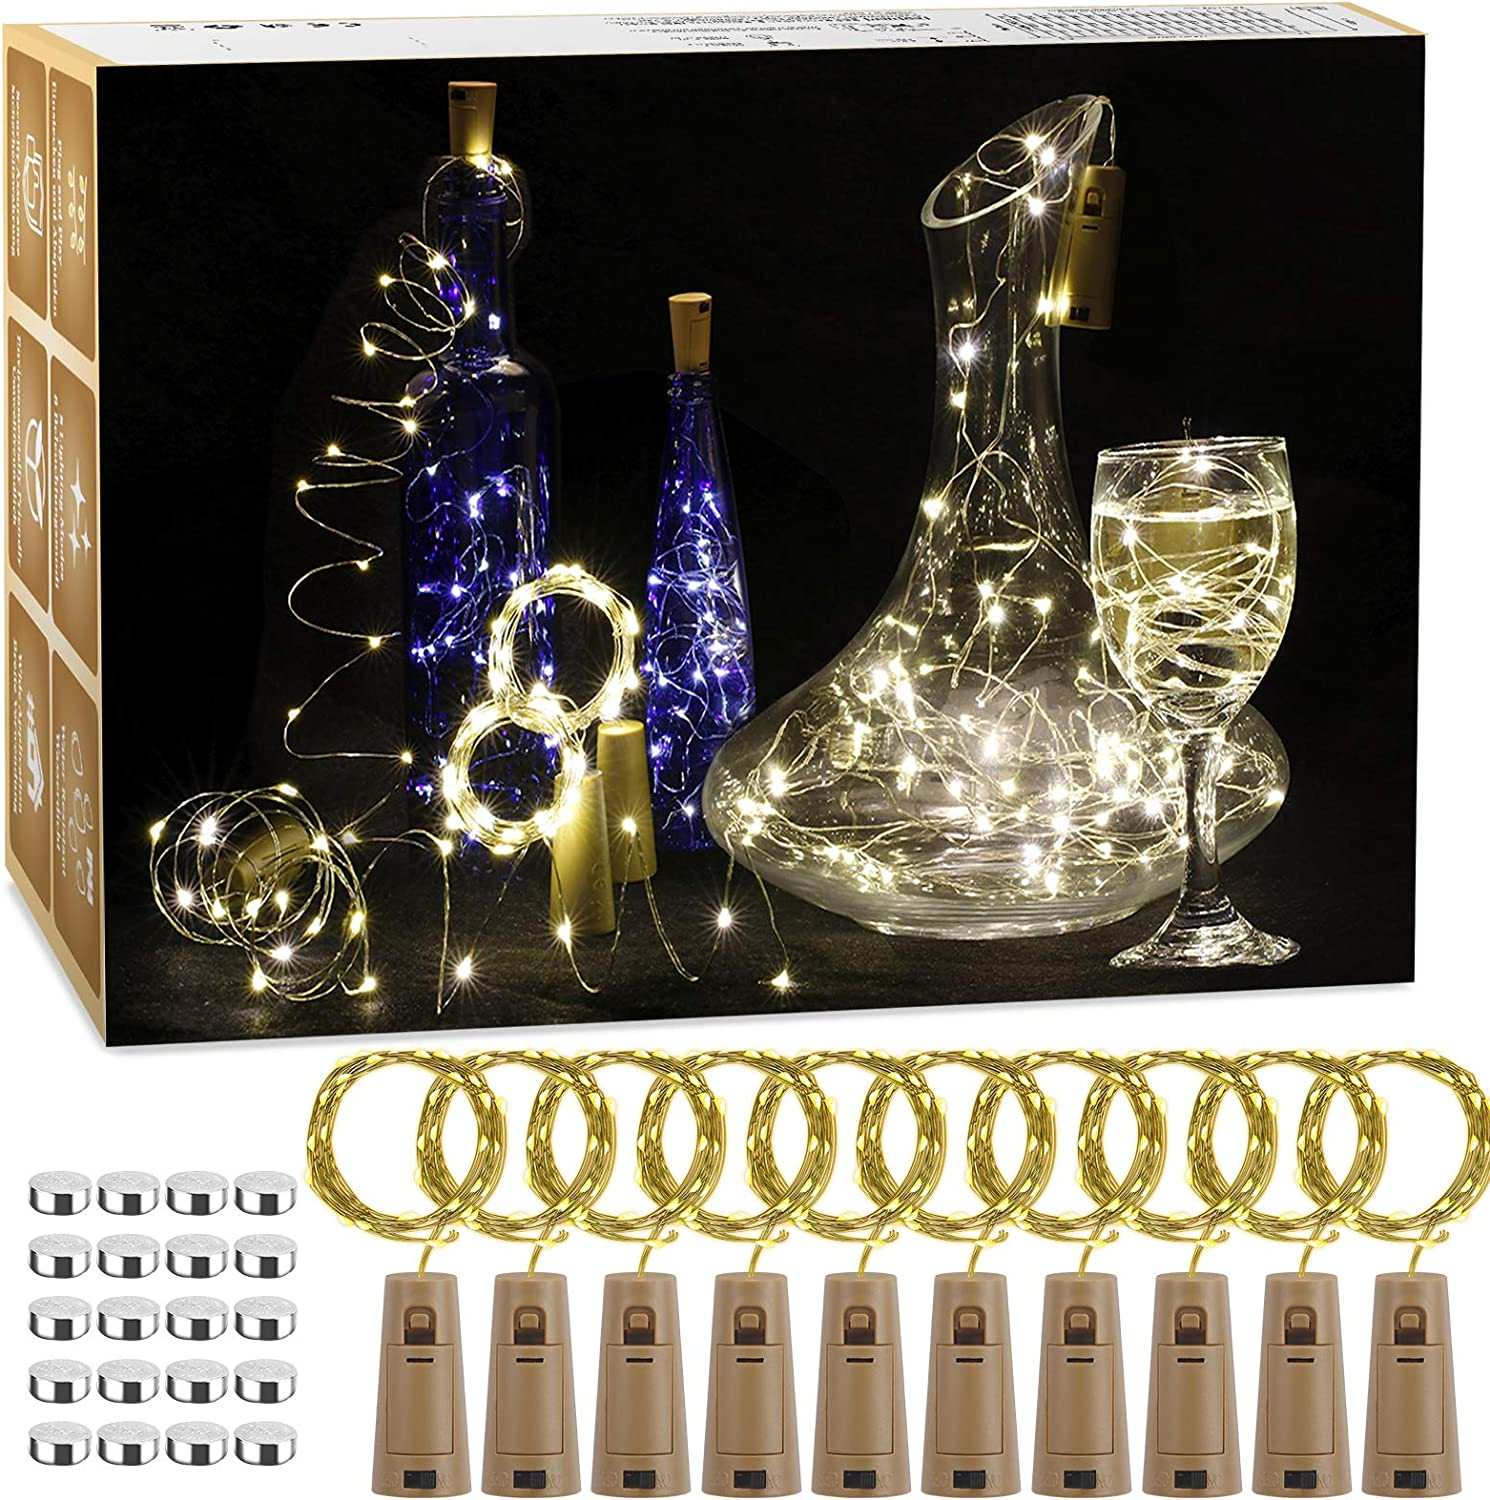 BIGHOUSE 12 Pack 2M 20 LEDs Copper Wire Battery Operated Wine Bottle Lights with Cork LED String Lights WAS £8.99 NOW £4.49 w/code IHGOCXMV @ Amazon